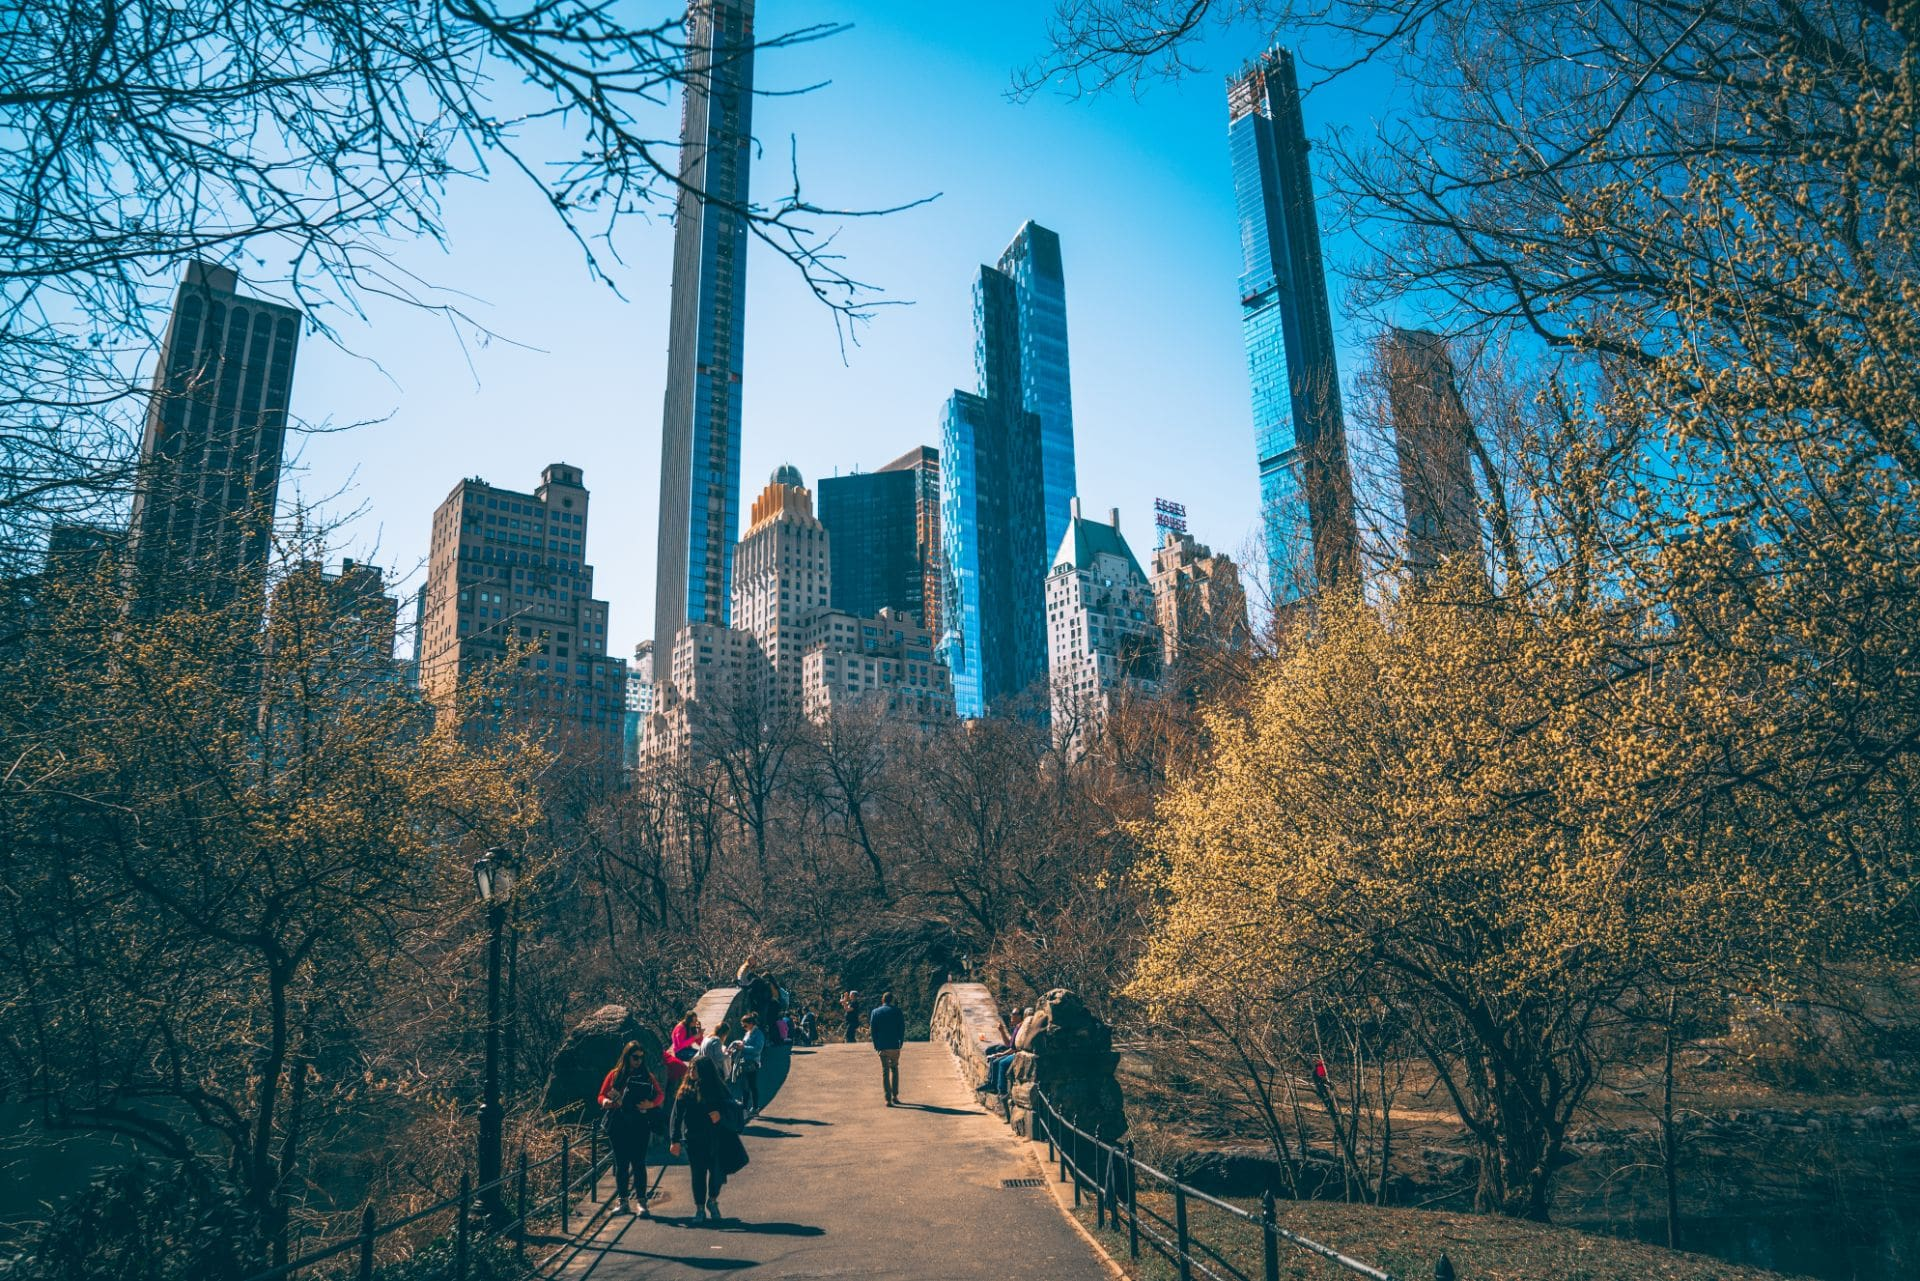 people-walking-across-bridge-in-central-park-new-york-on-a-summers-day-with-skyscrapers-in-the-background-new-york-in-4-days